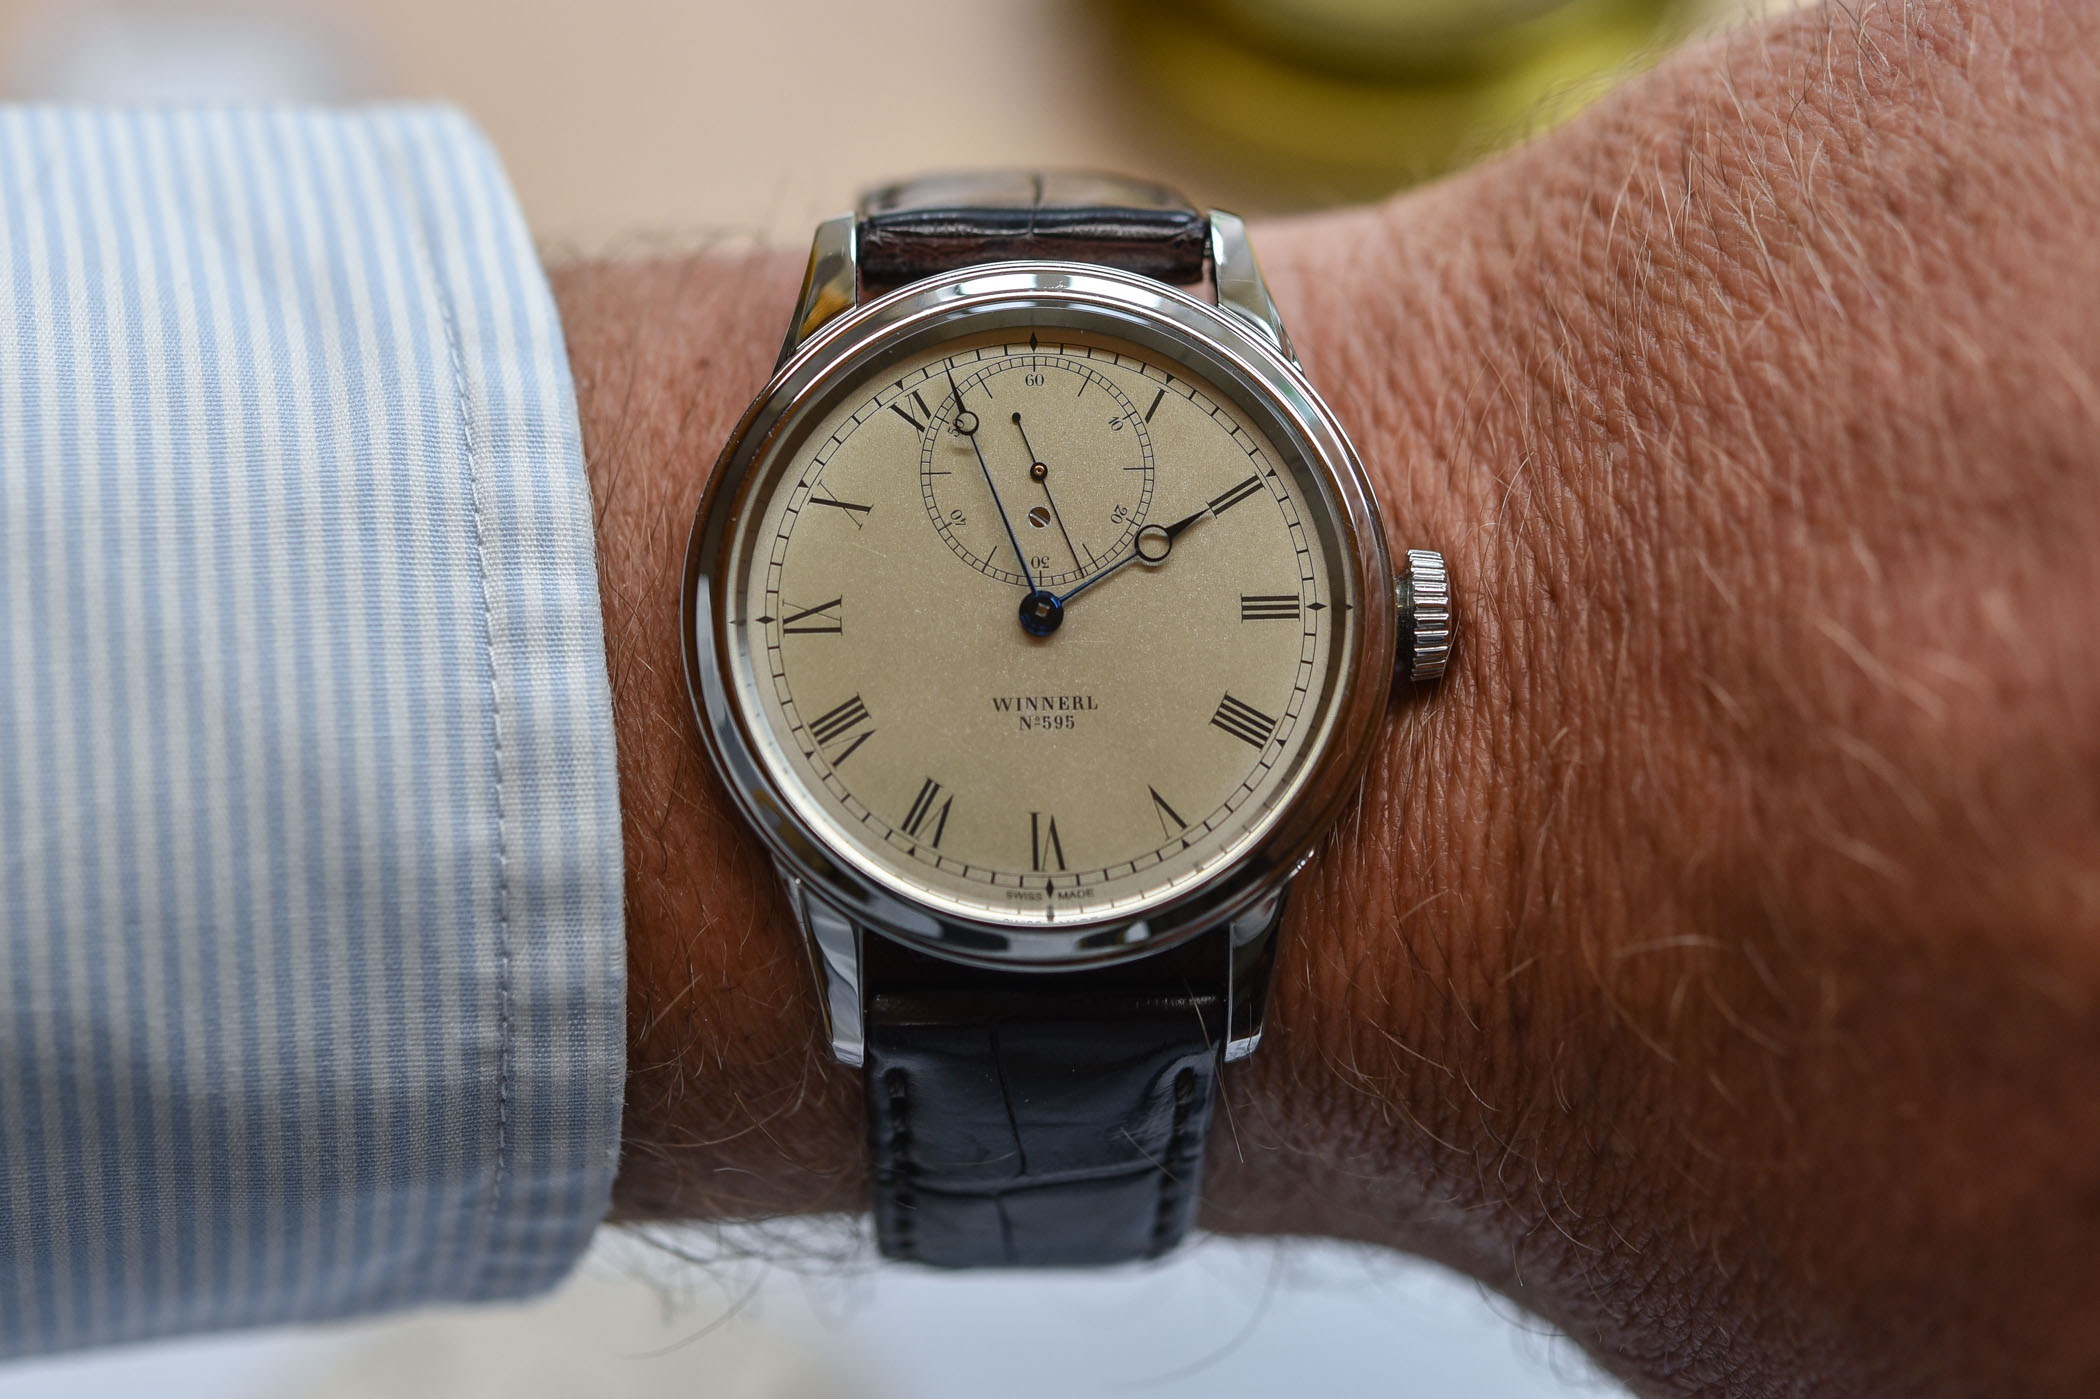 Winnerl independent watchmaking